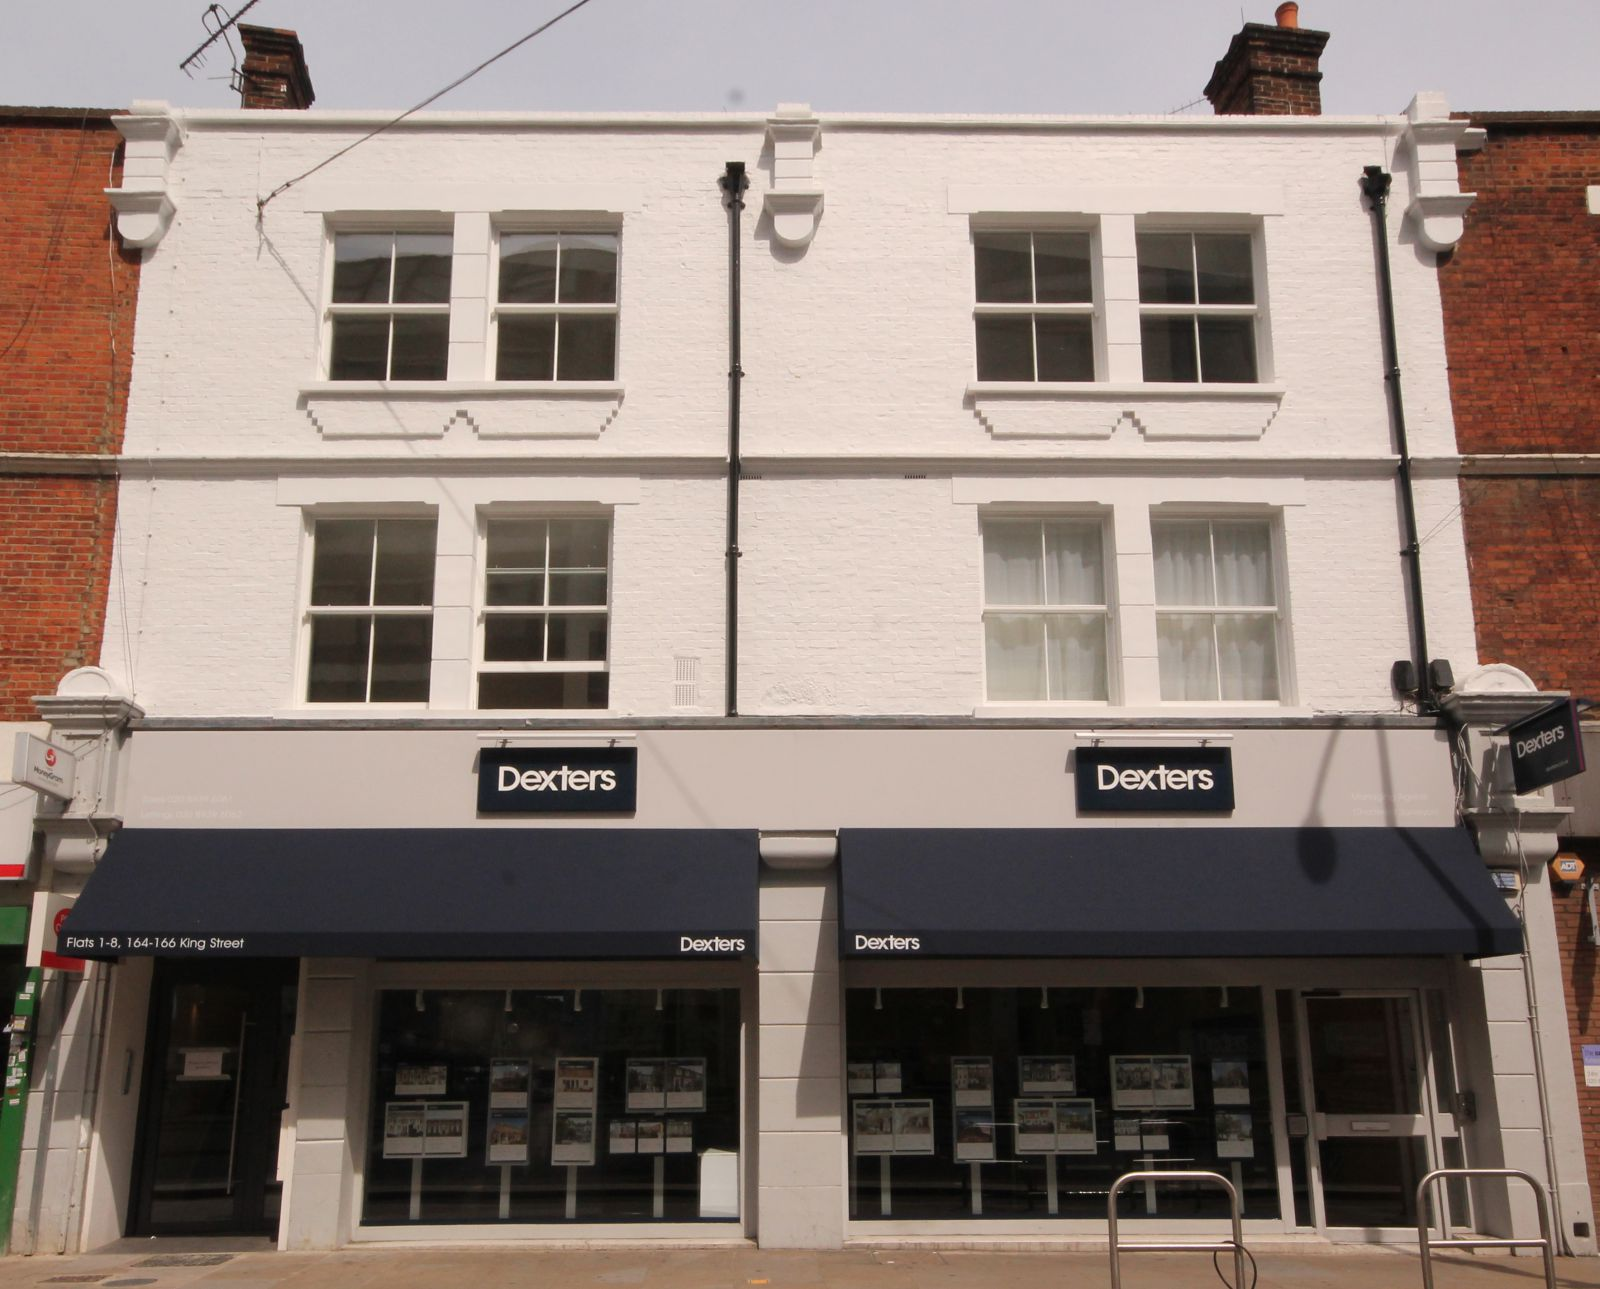 Dexters Hammersmith Estate Agents - London, London W6 0QU - 020 8939 6061 | ShowMeLocal.com